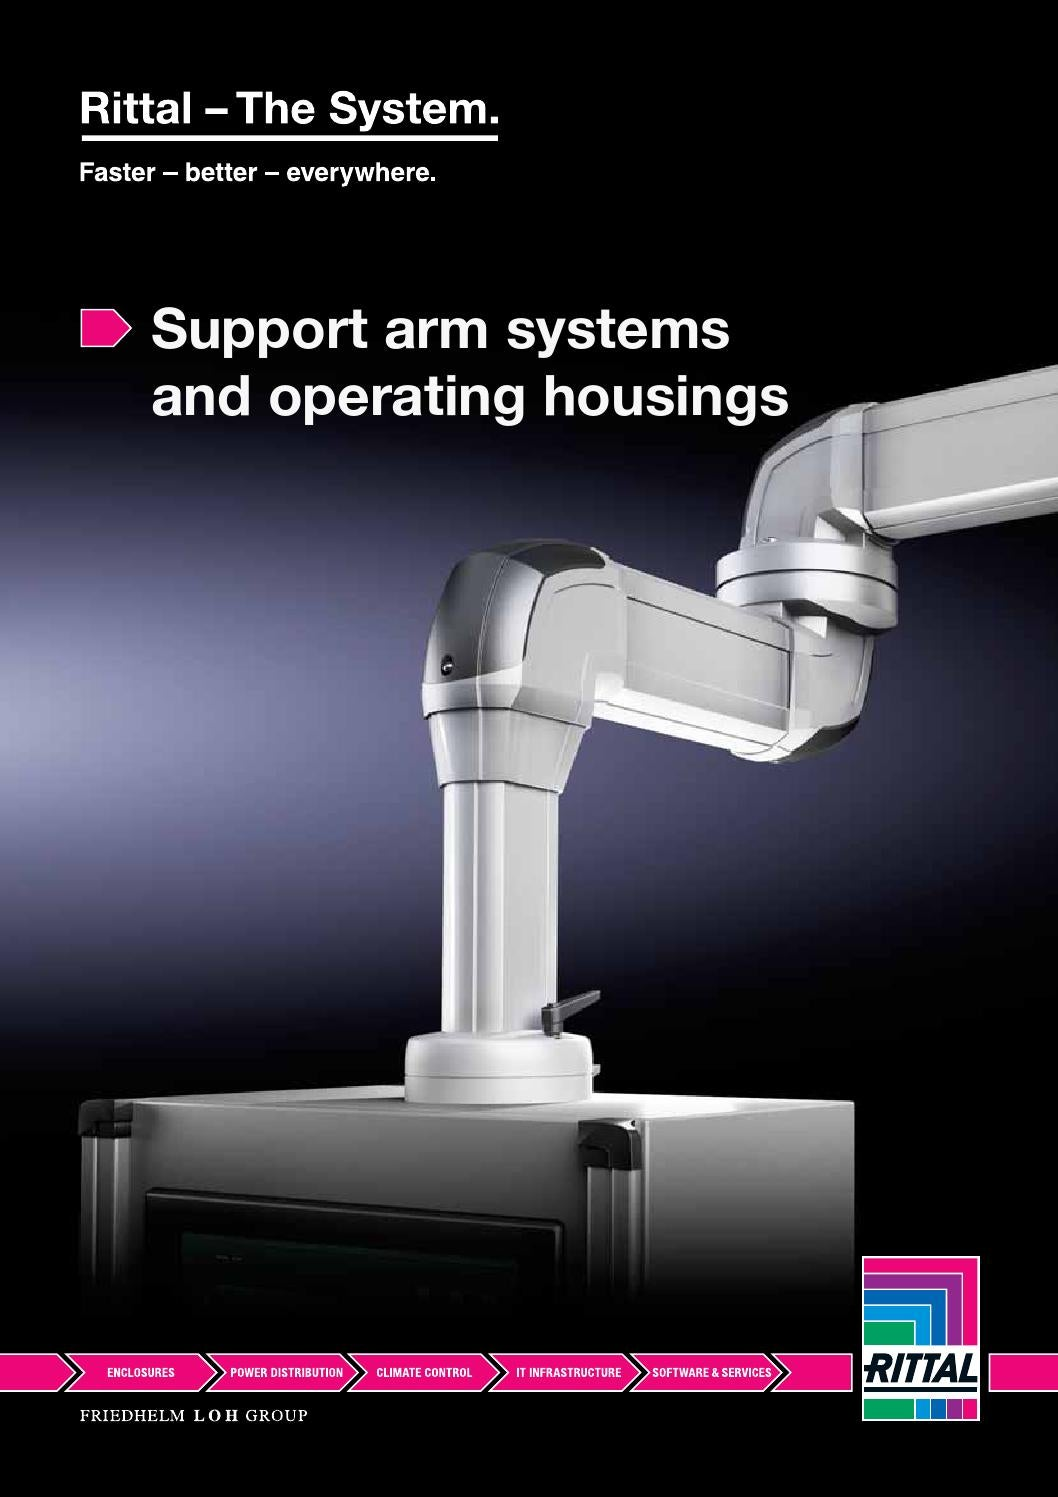 Rittal CP 40 support arm and arm system components used